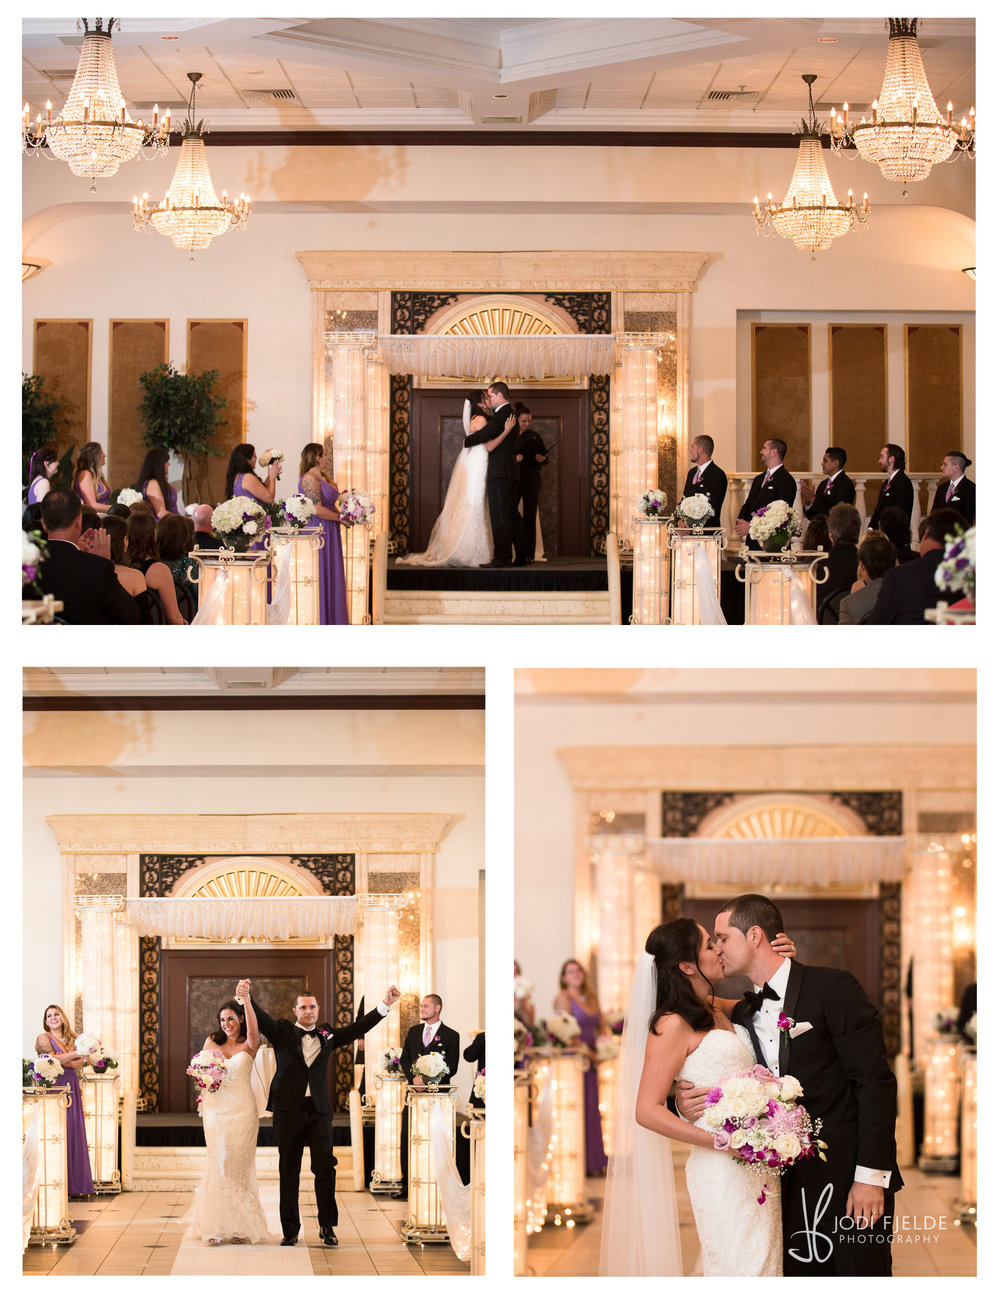 Fort-Lauderdale-Signature-grand-wedding-Paola-and-Max-married-19.jpg